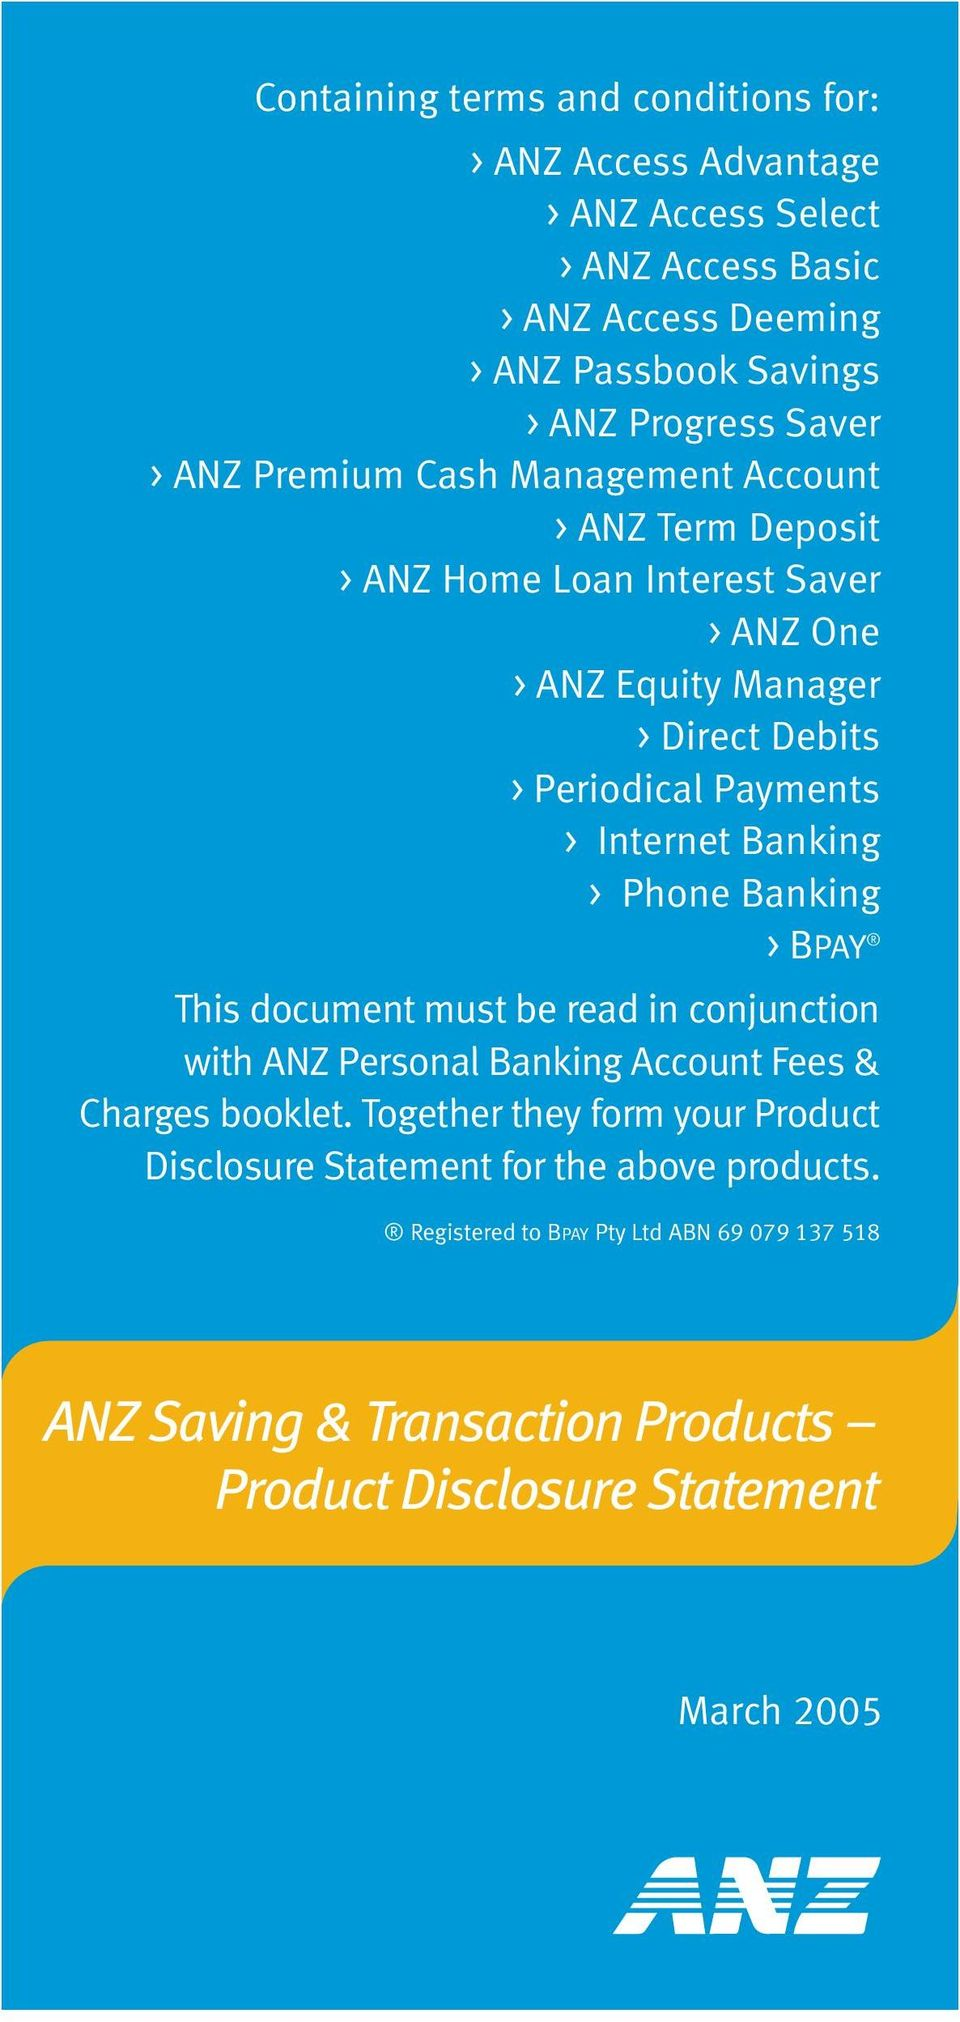 Internet Banking > Phone Banking > BPAY This document must be read in conjunction with ANZ Personal Banking Account Fees & Charges booklet.